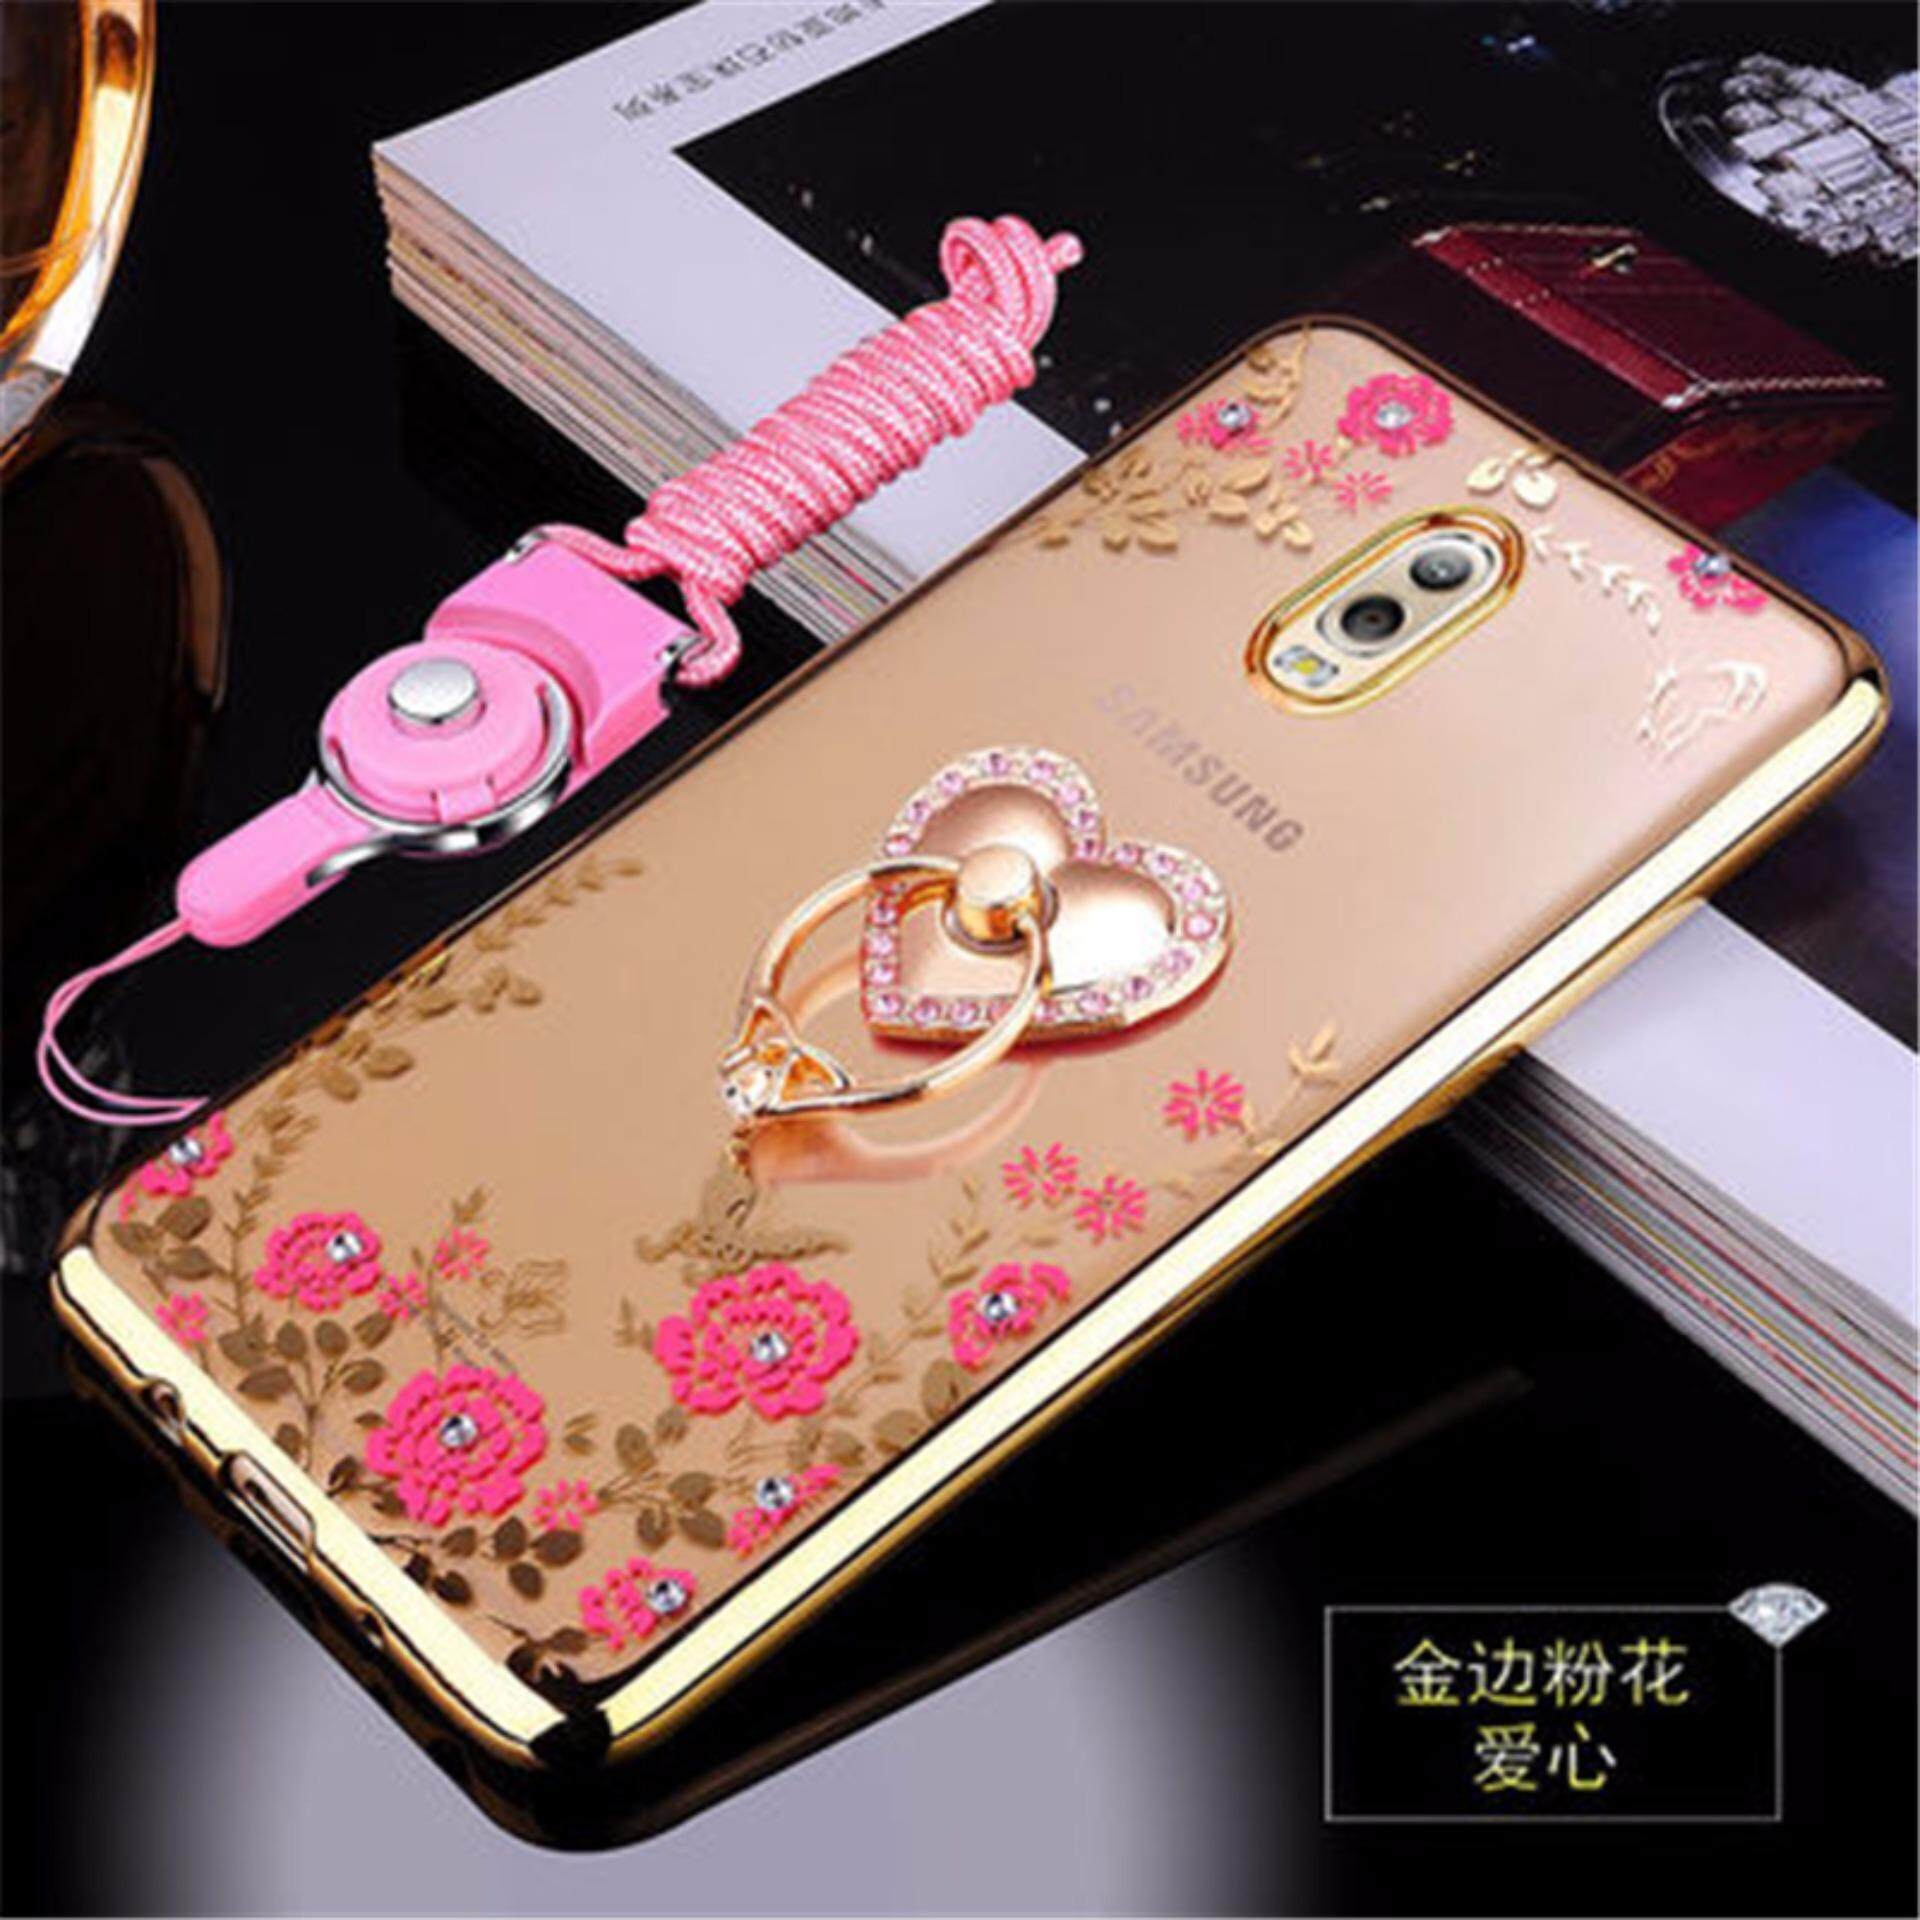 Where Can You Buy Rhinestone Phone Case Cover Holder Stand Protective Ultra Thin Silicone Soft Case For Samsung Galaxy C7 2017 Samsung Galaxy J7 Samsung Galaxy C8 C7100 5 5 Inch Case Intl